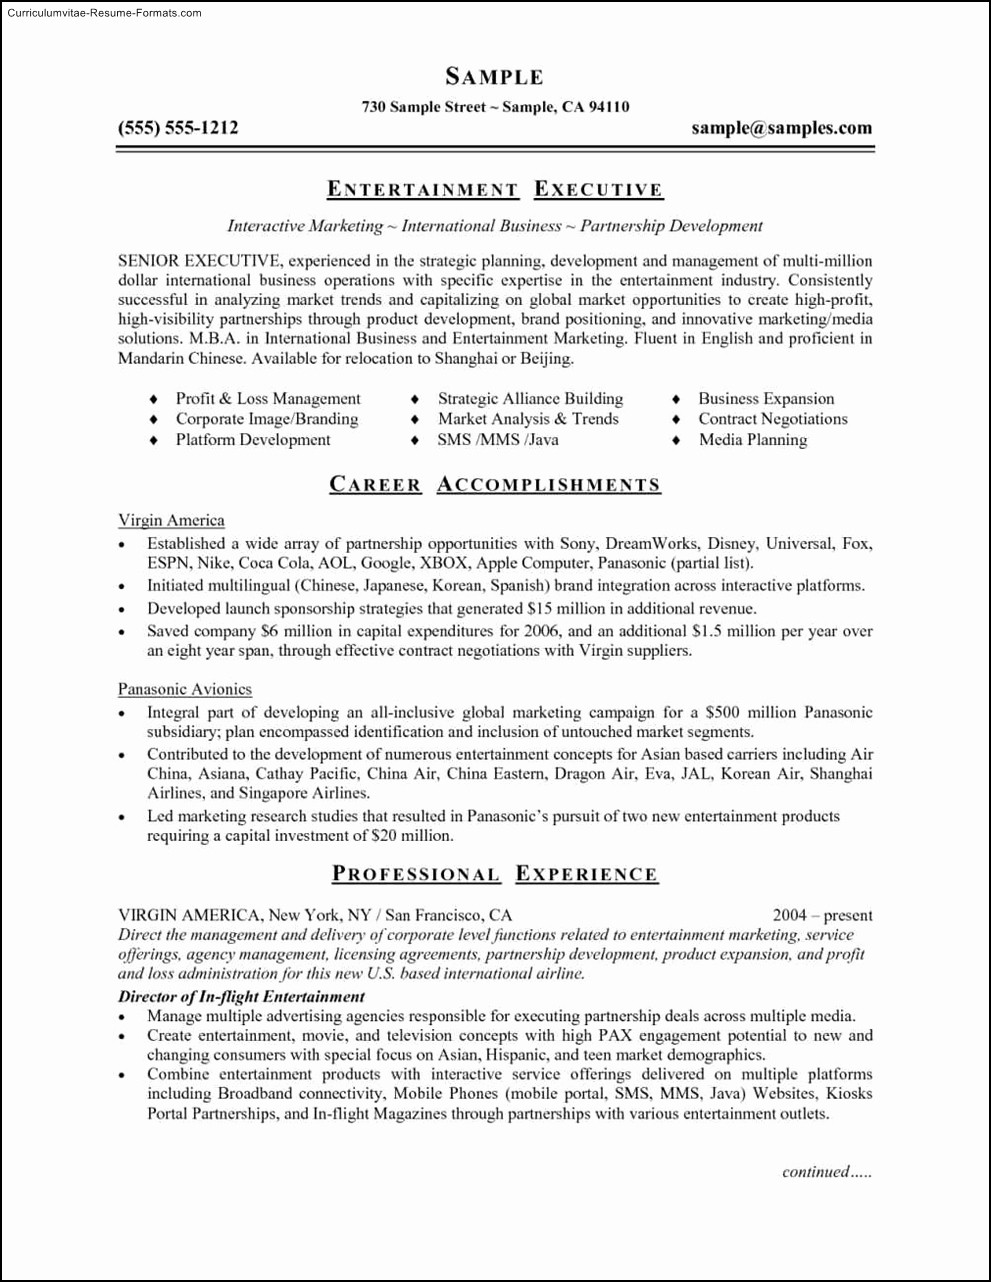 Downloadable Resume Template Microsoft Word Awesome Microsoft Word 2003 Resume Template Free Download Free